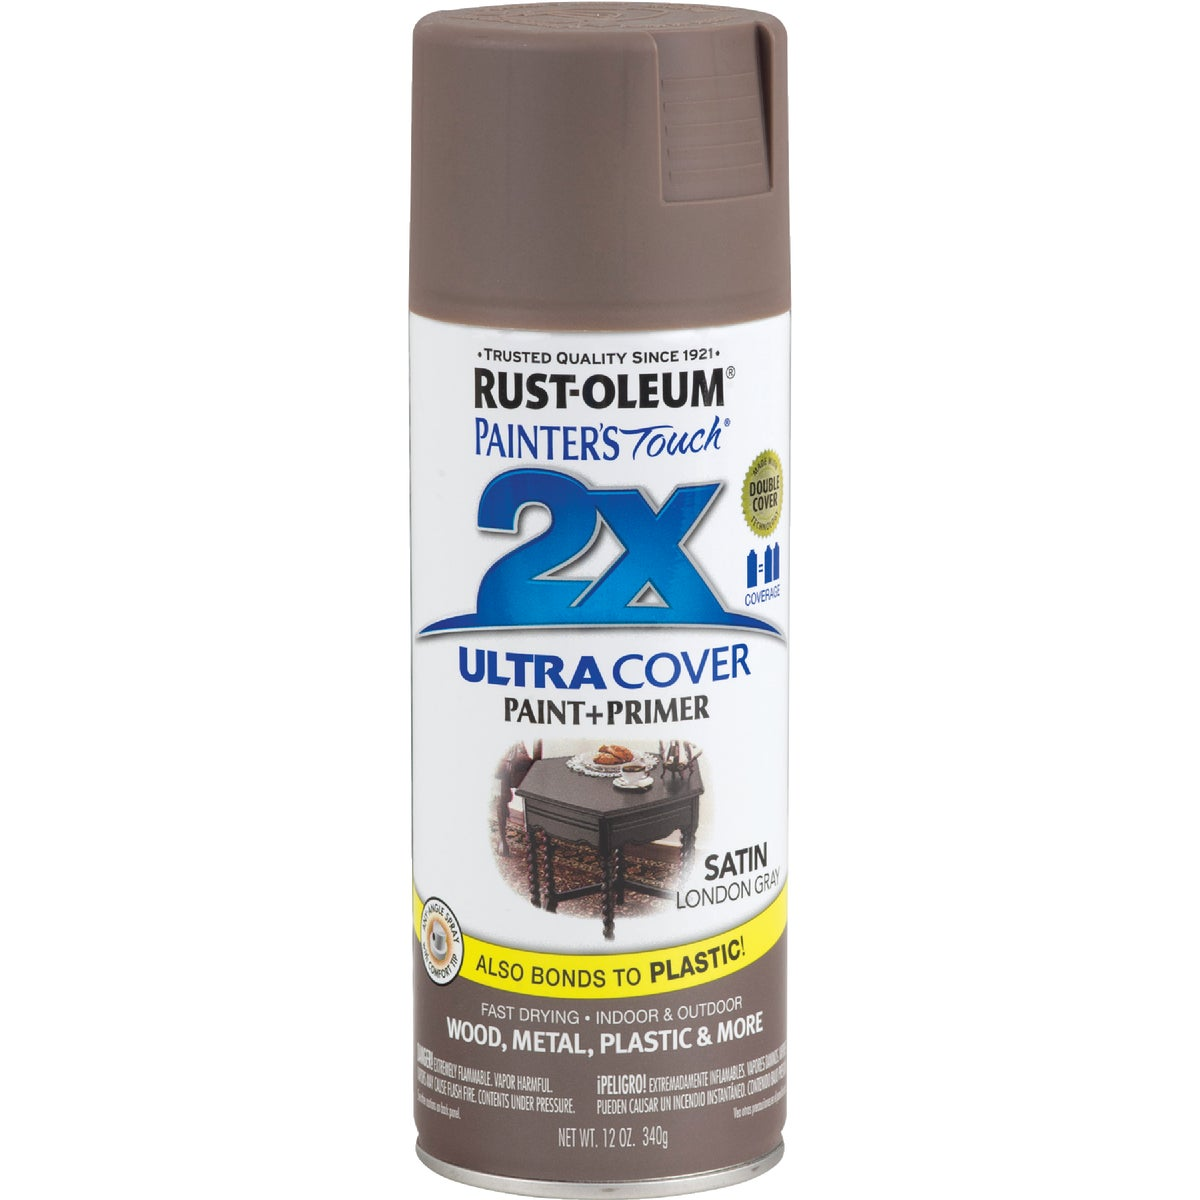 SAT LNDN GRY SPRAY PAINT - 249857 by Rustoleum